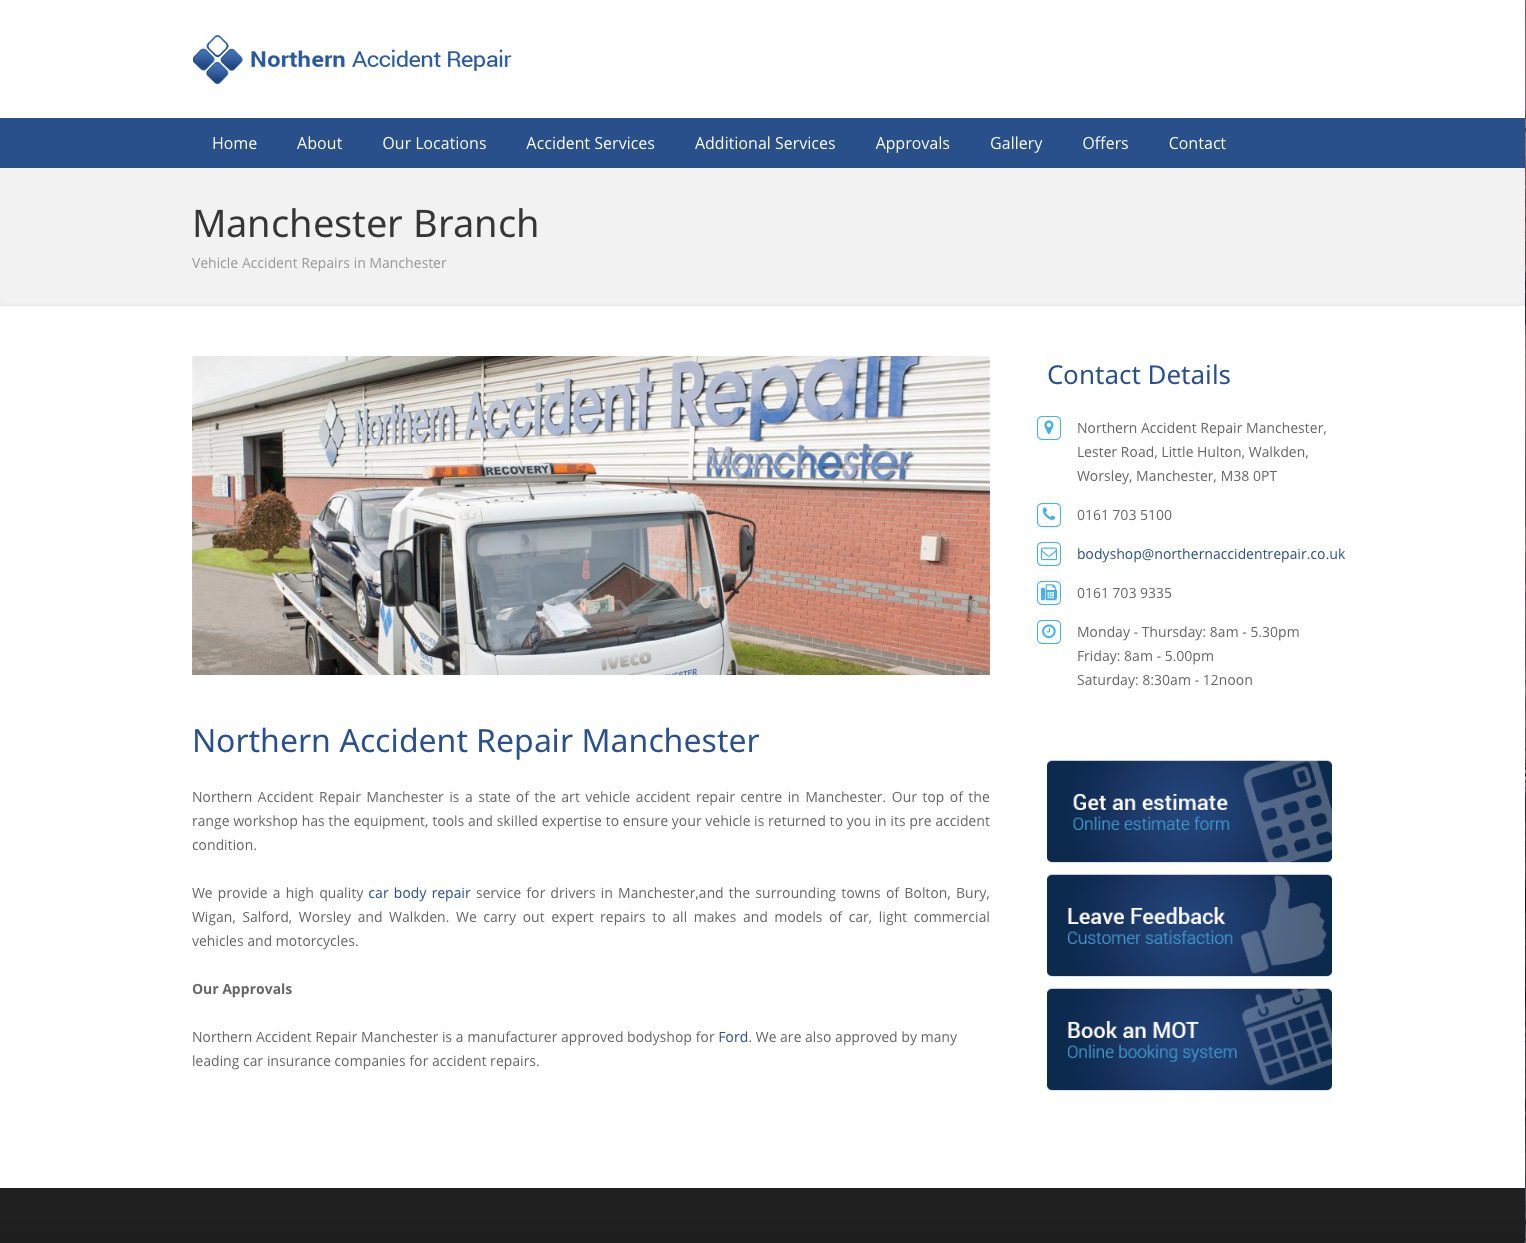 Commercial photography for Northern Accident Repair